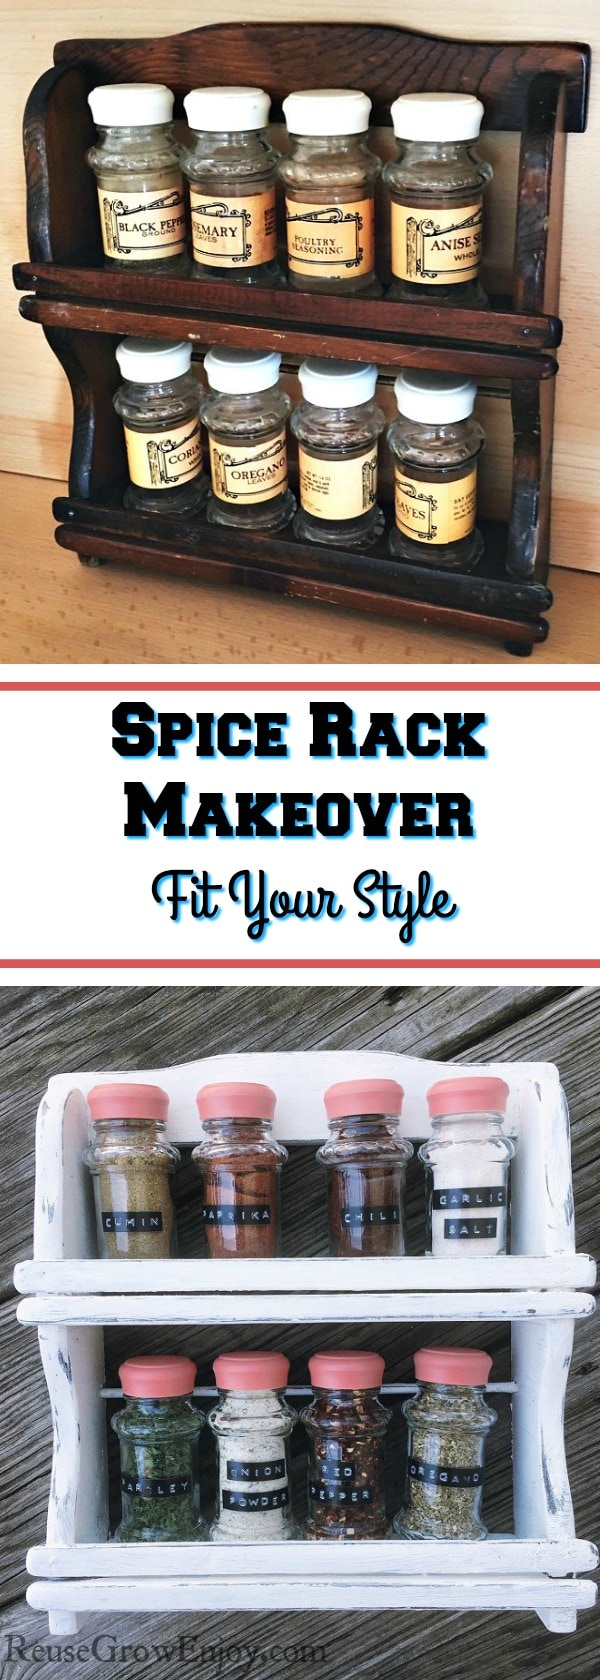 Check out this super easy DIY Spice Rack Makeover! Give that old spice rack a whole new look!